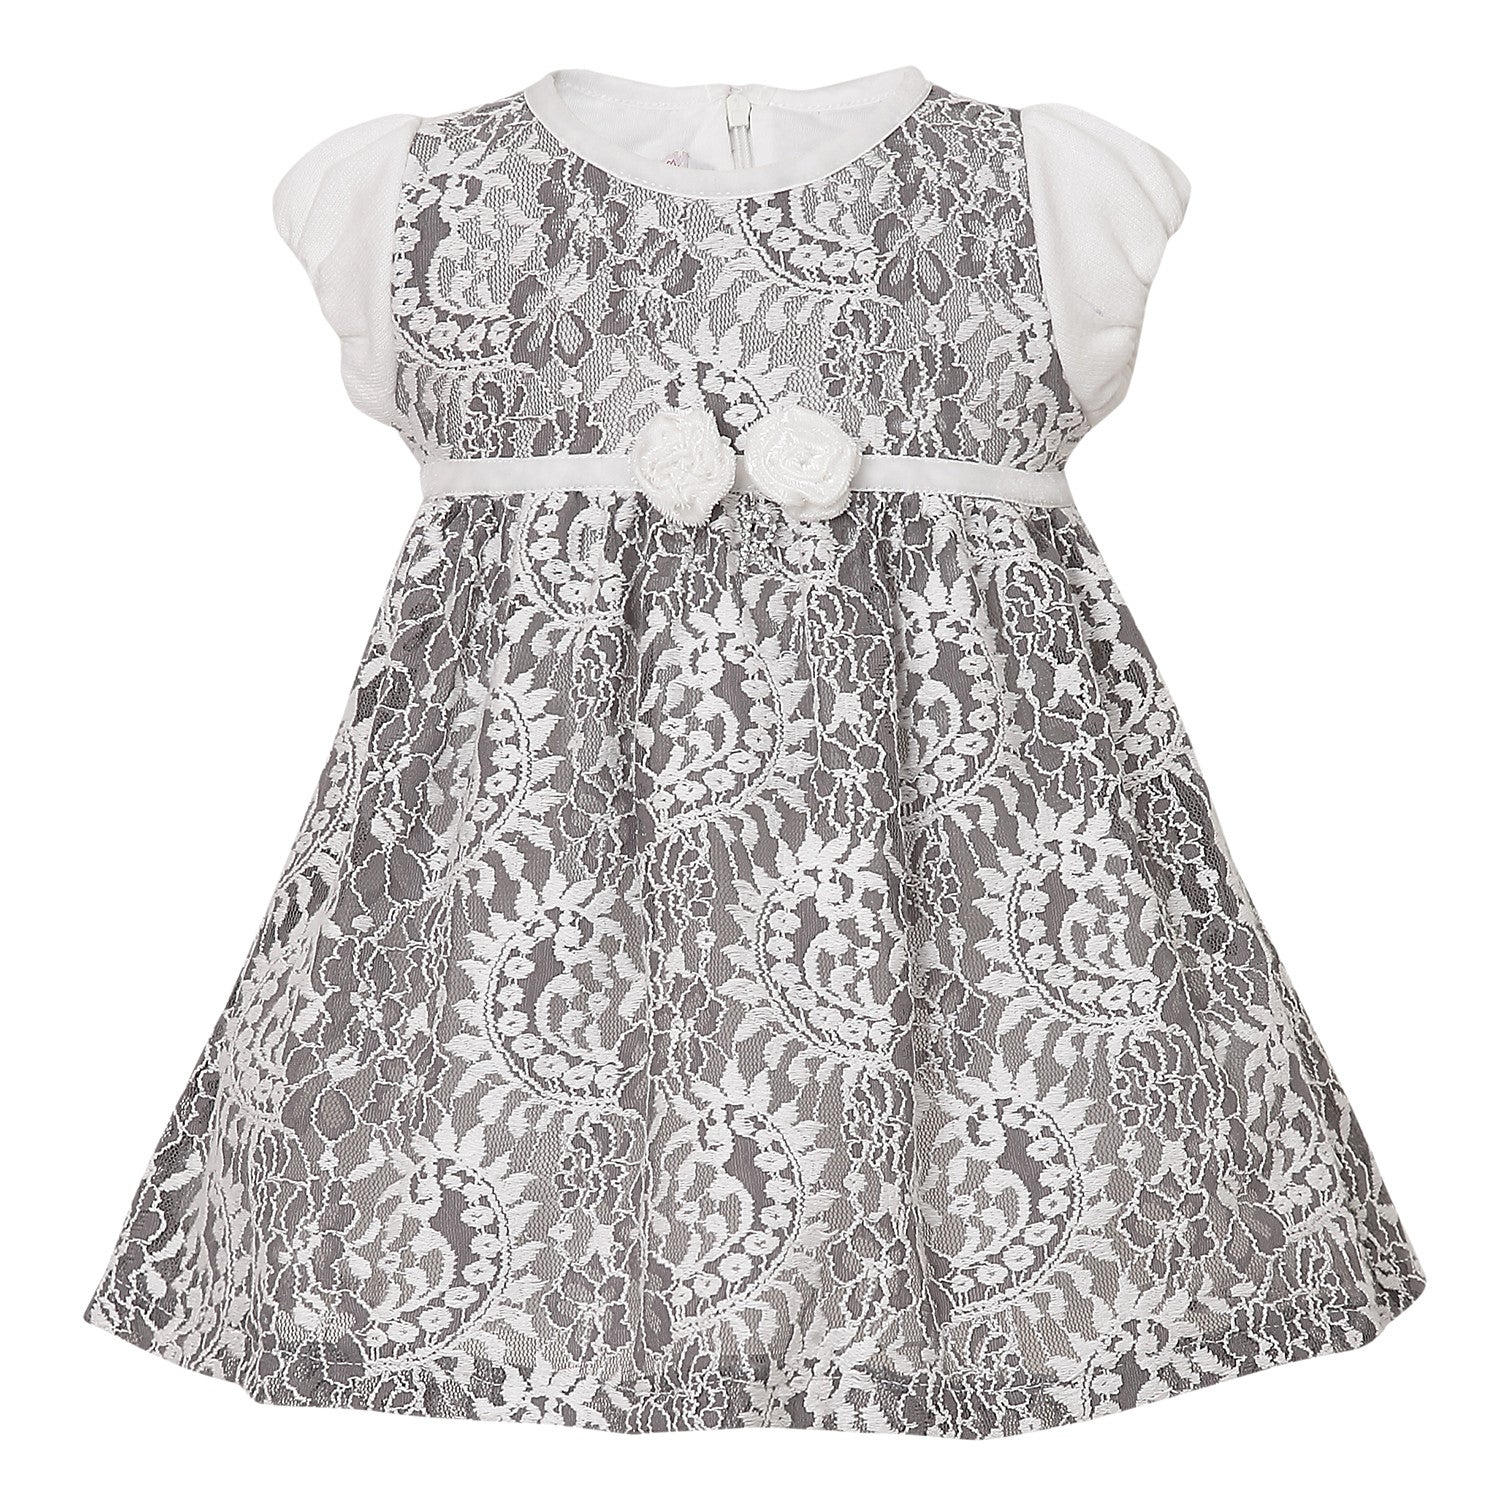 Baby Girl embroidery Dress in White & Gray